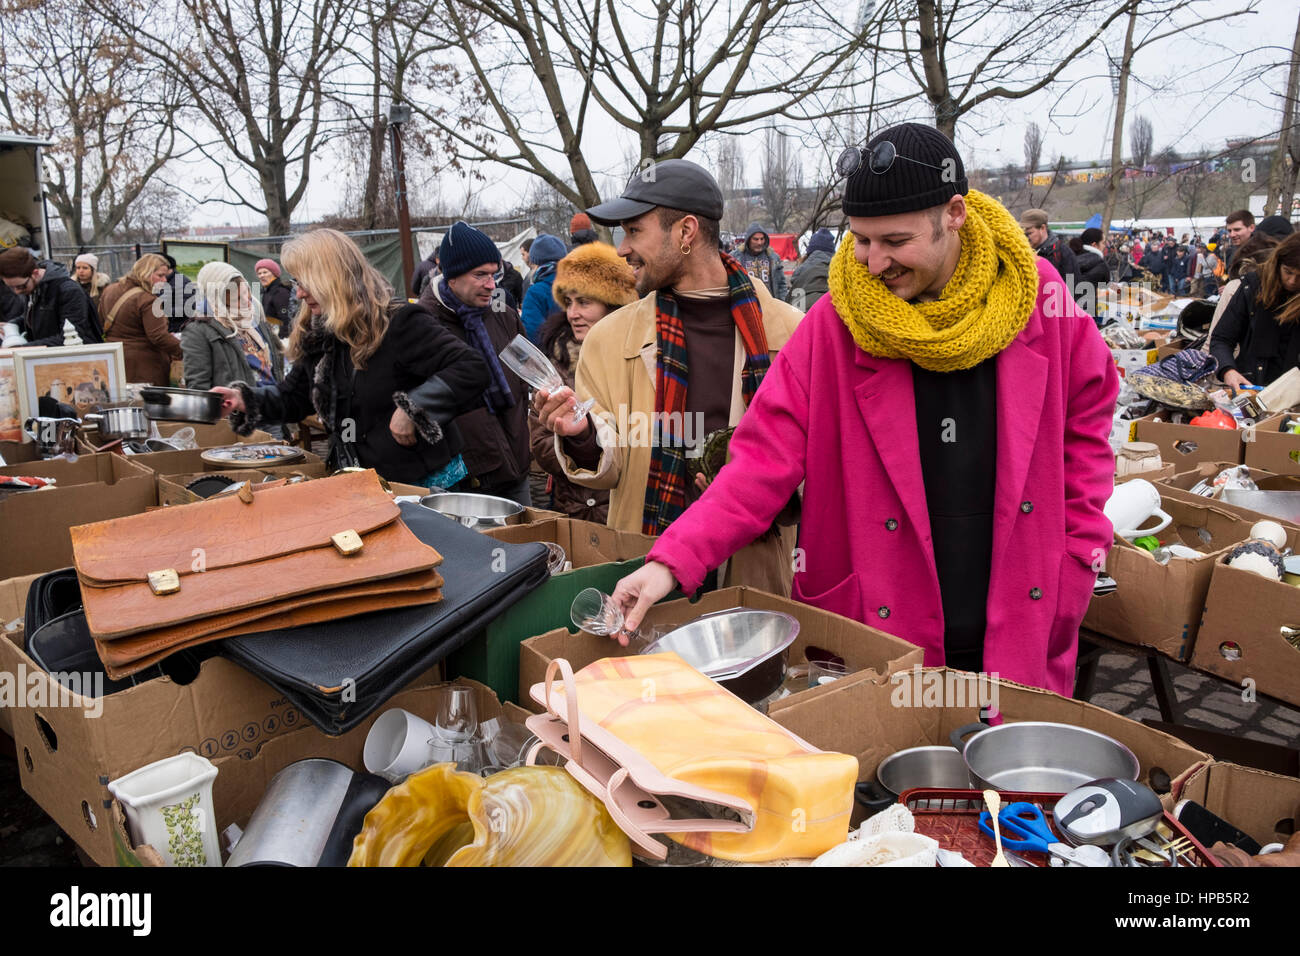 Visitors browsing second hand goods at Sunday market at Mauer Park in Prenzlauer Berg in Berlin, Germany - Stock Image